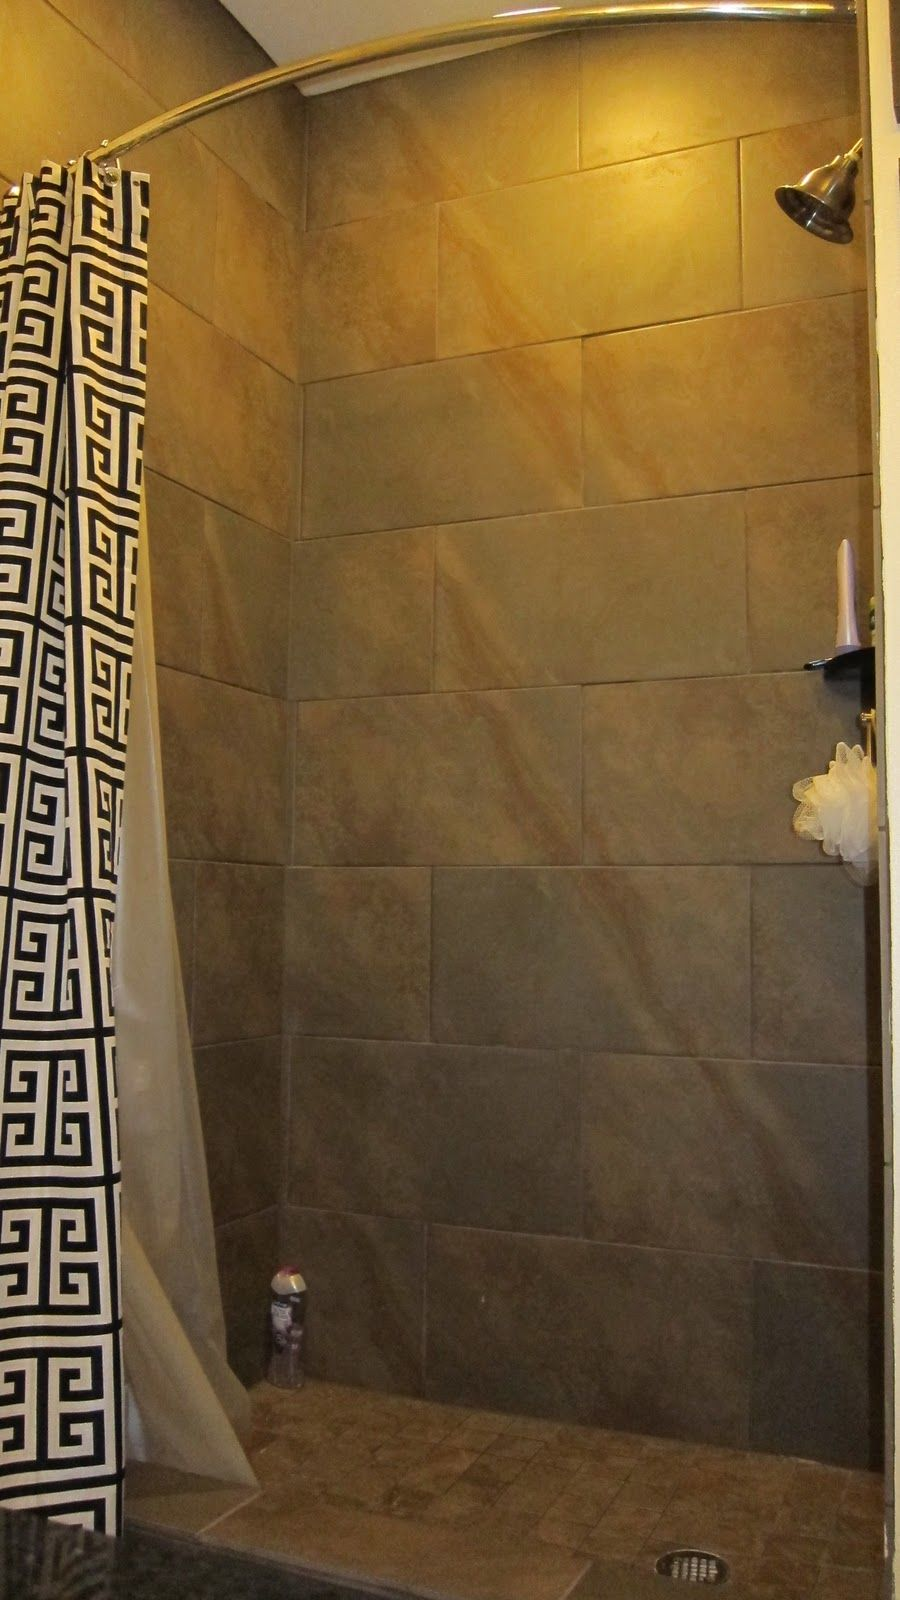 DIY Week: Make a Shower Curtain ... - New shower stall curtains...OR ...